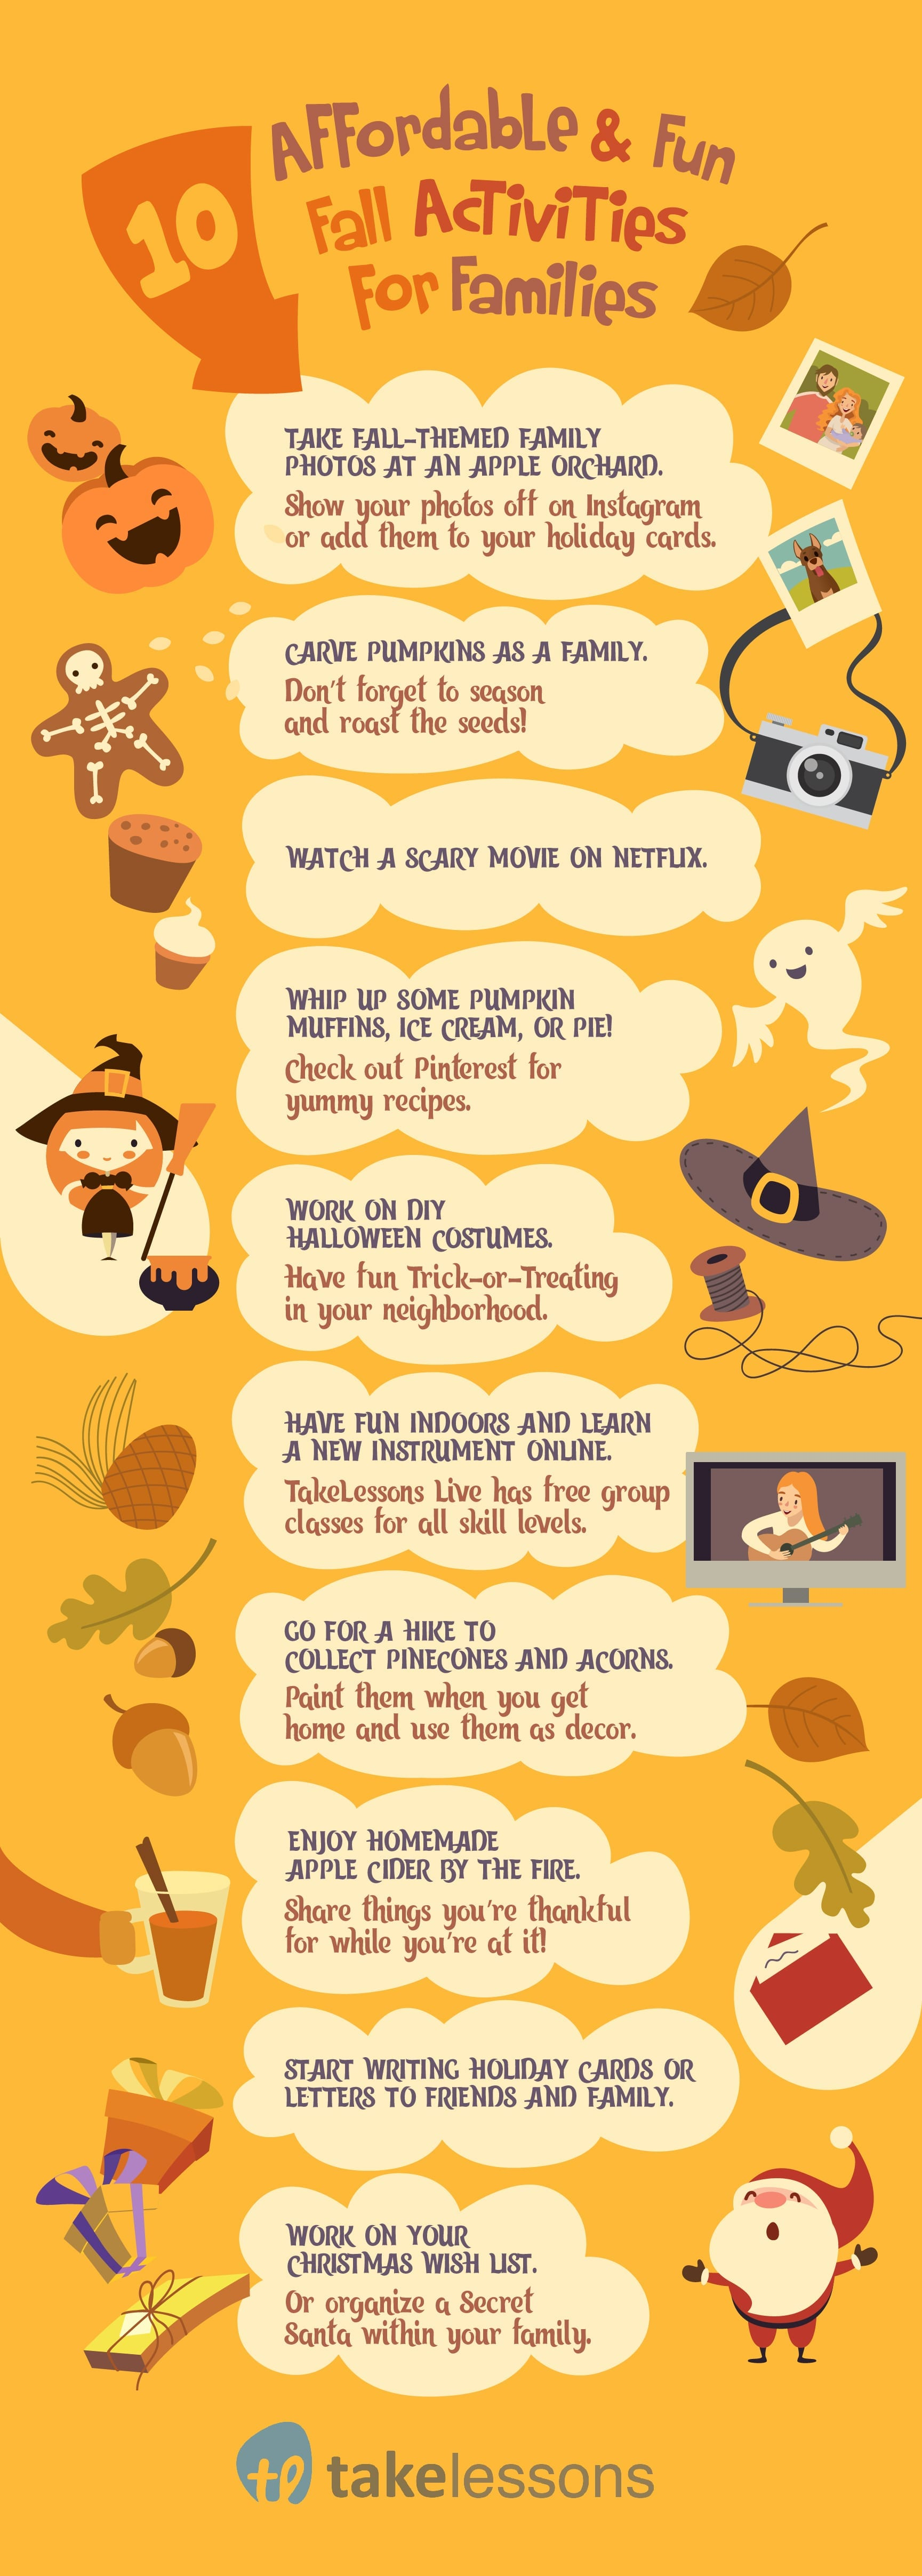 10 Affordable Amp Fun Fall Activities For Families Infographic